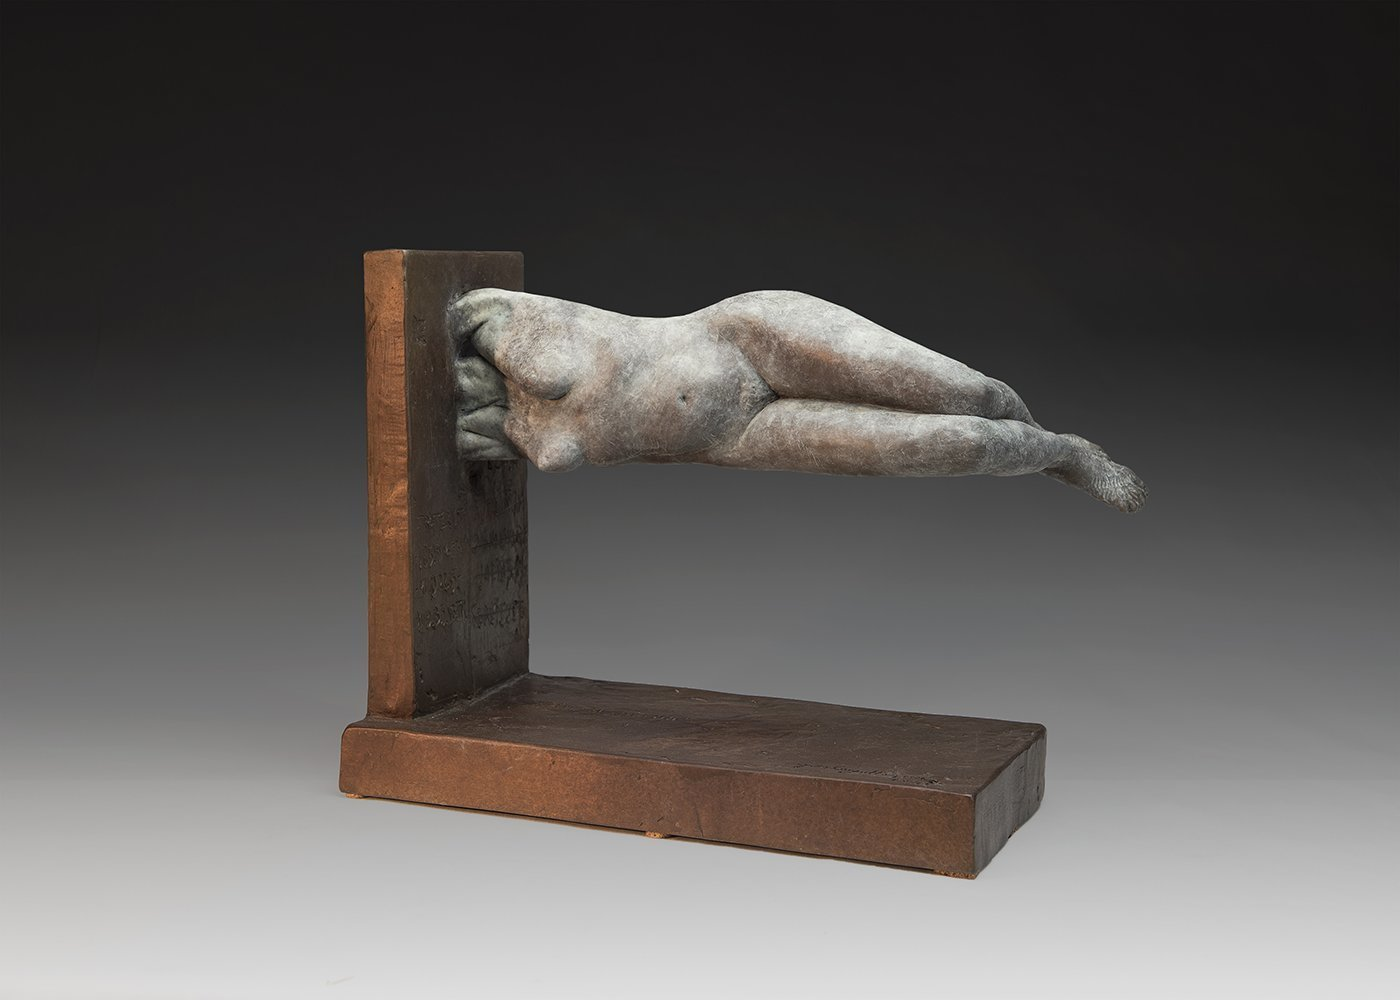 Yves  Goyatton: 'Weighless', 2016 Bronze Sculpture, Figurative. Artist Description: Yves Goyatton bronze contemporary sculpture was created in 2016 Weightless is a tribute to life. Thisbody is floating but remains strong defying gravitational pull. Like an imaginary linewho can represent the goodbad of human spirit. ...